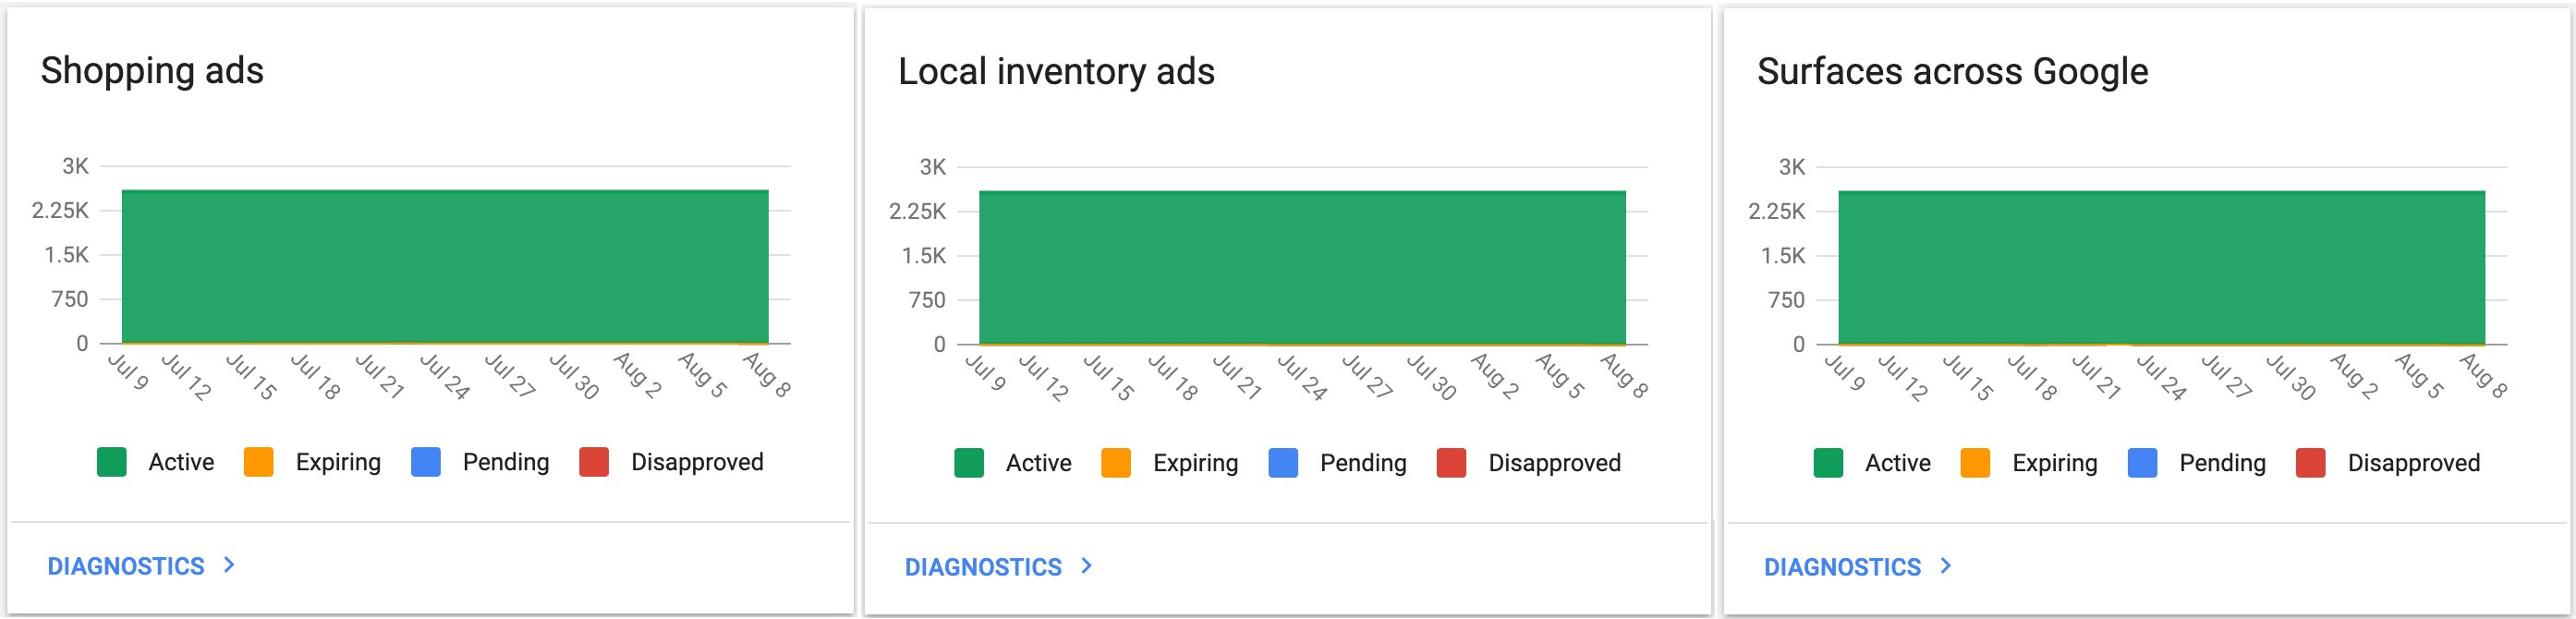 google local inventory ads graph showing 100% of ads accepted